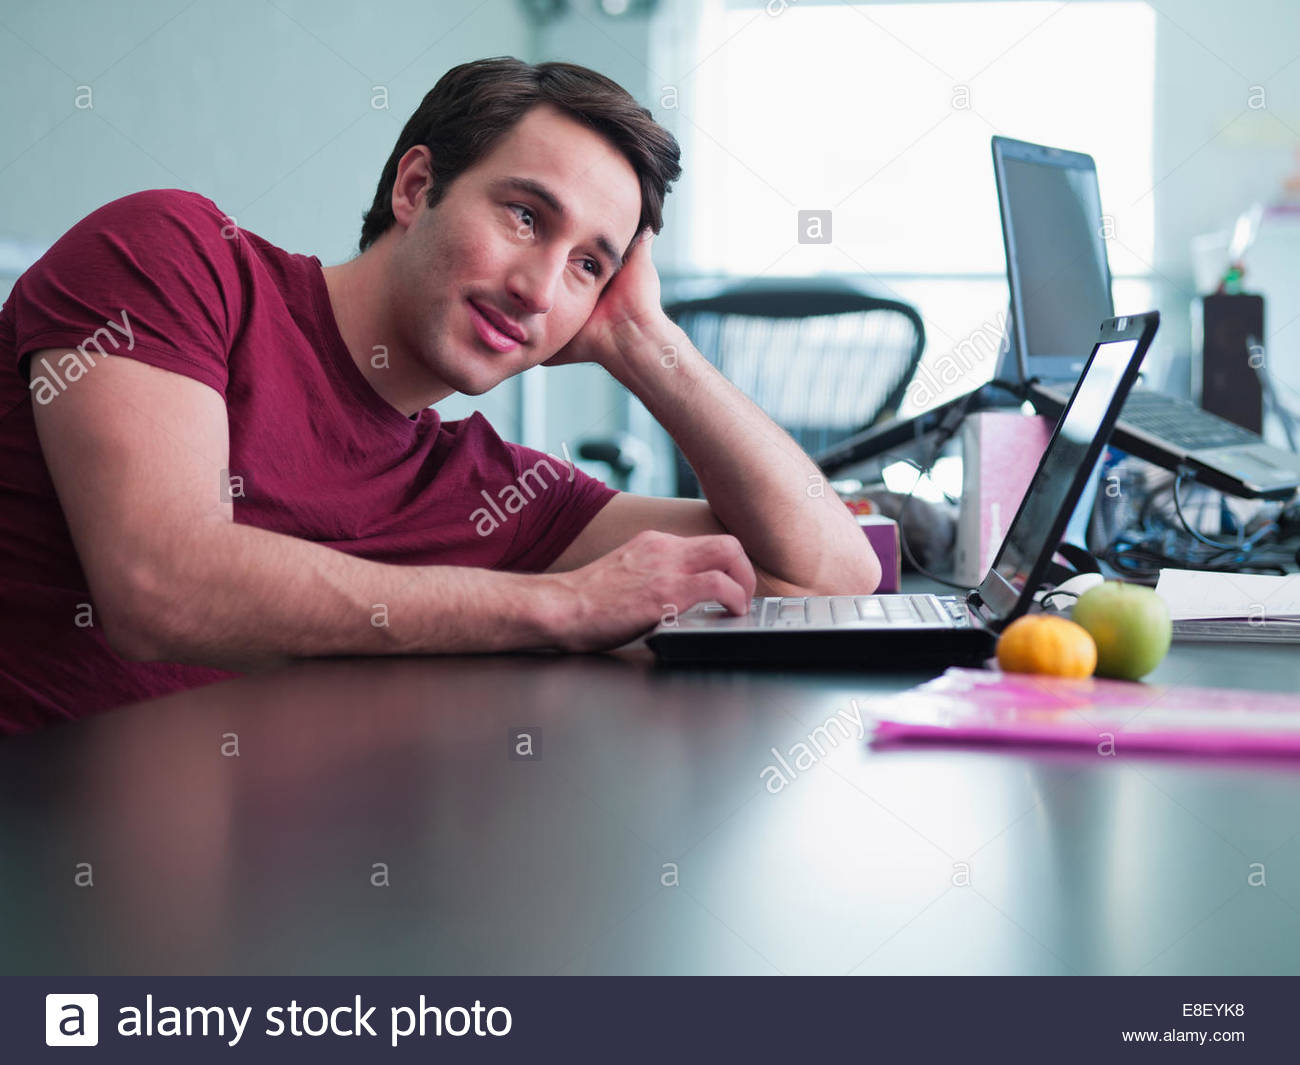 Smiling businessman using laptop and leaning on desk in office Photo Stock